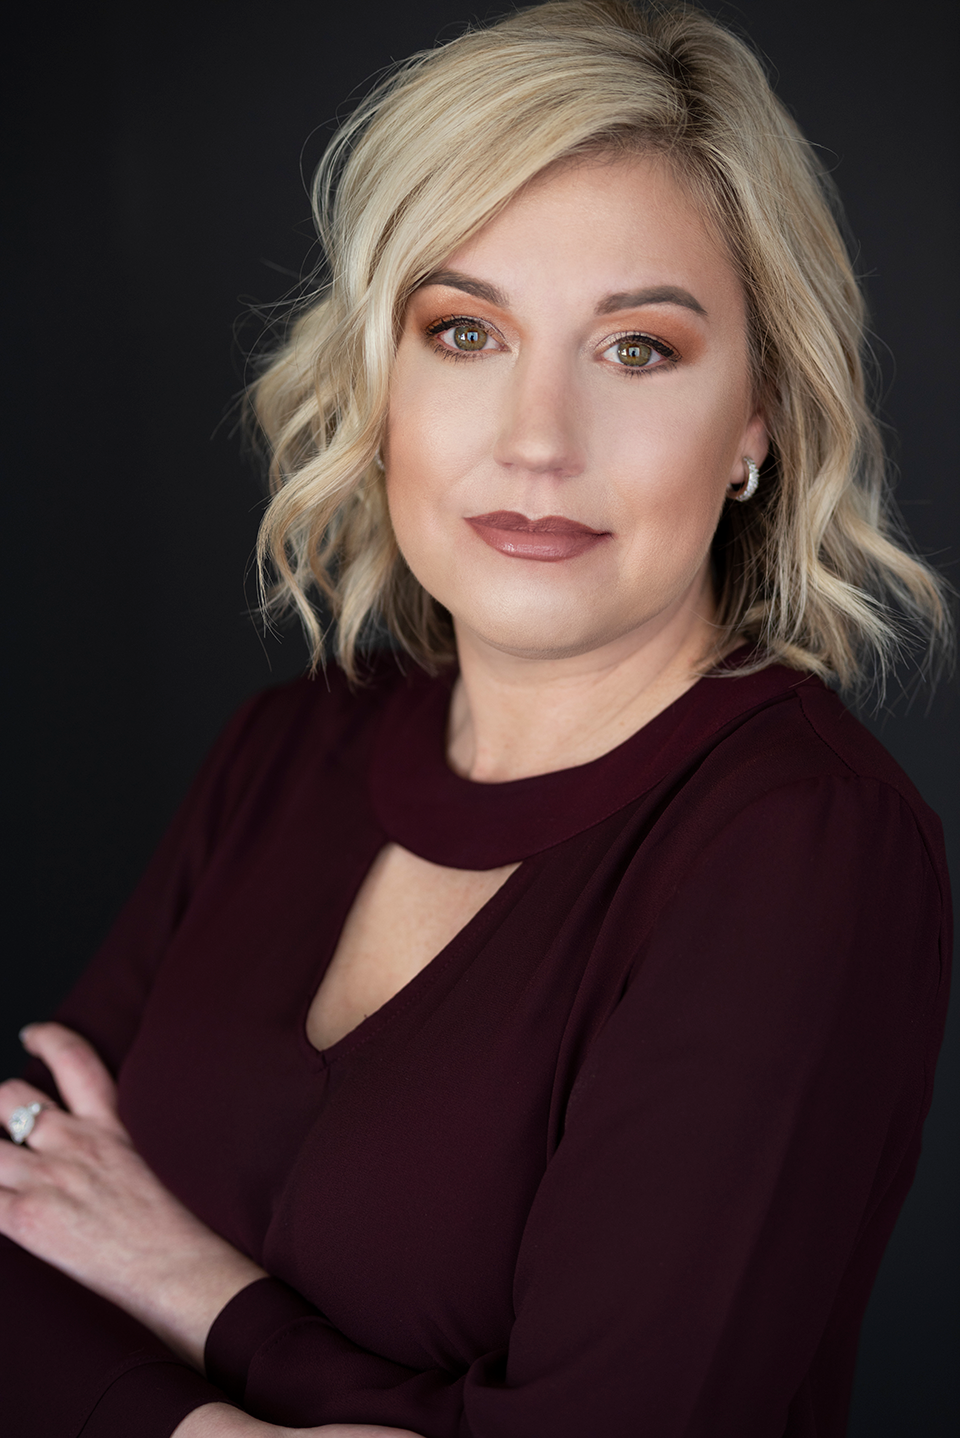 """Ashleigh - """"I thoroughly enjoyed getting glammed up and having you take my pictures, as you do amazing work! The reveal process is amazing and I love the video that you add in!"""""""